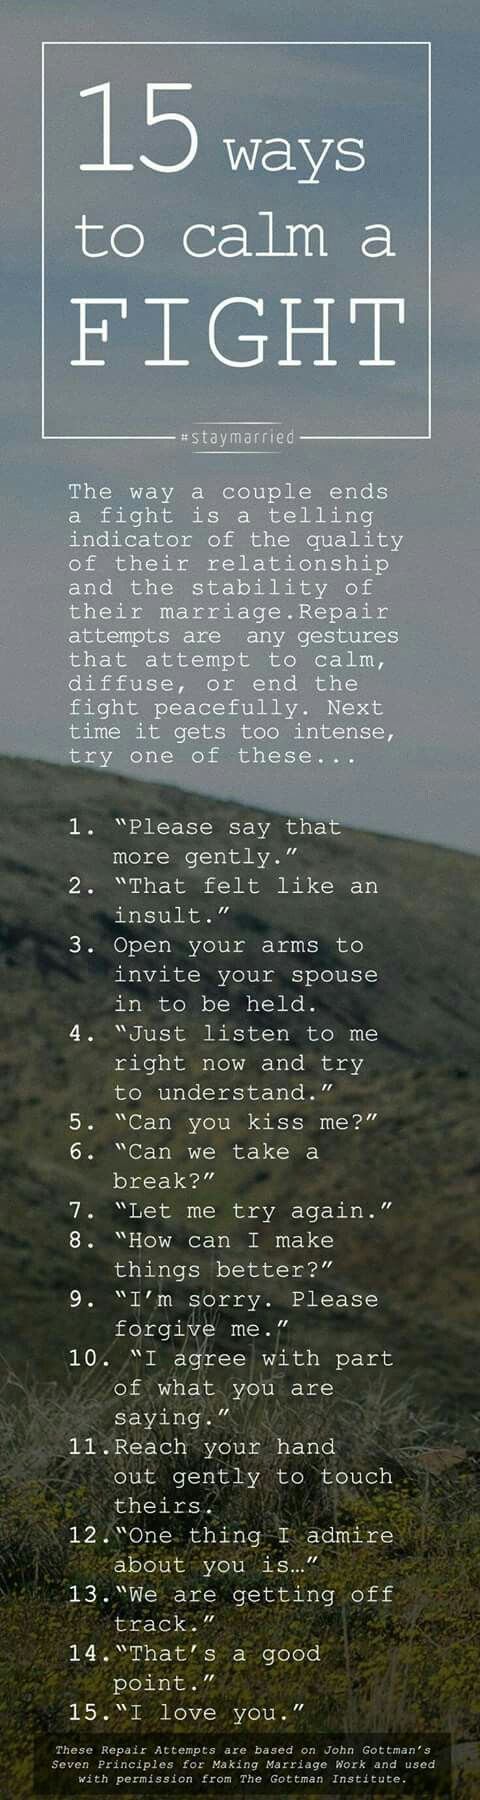 Somethings to say to defuse a fight...